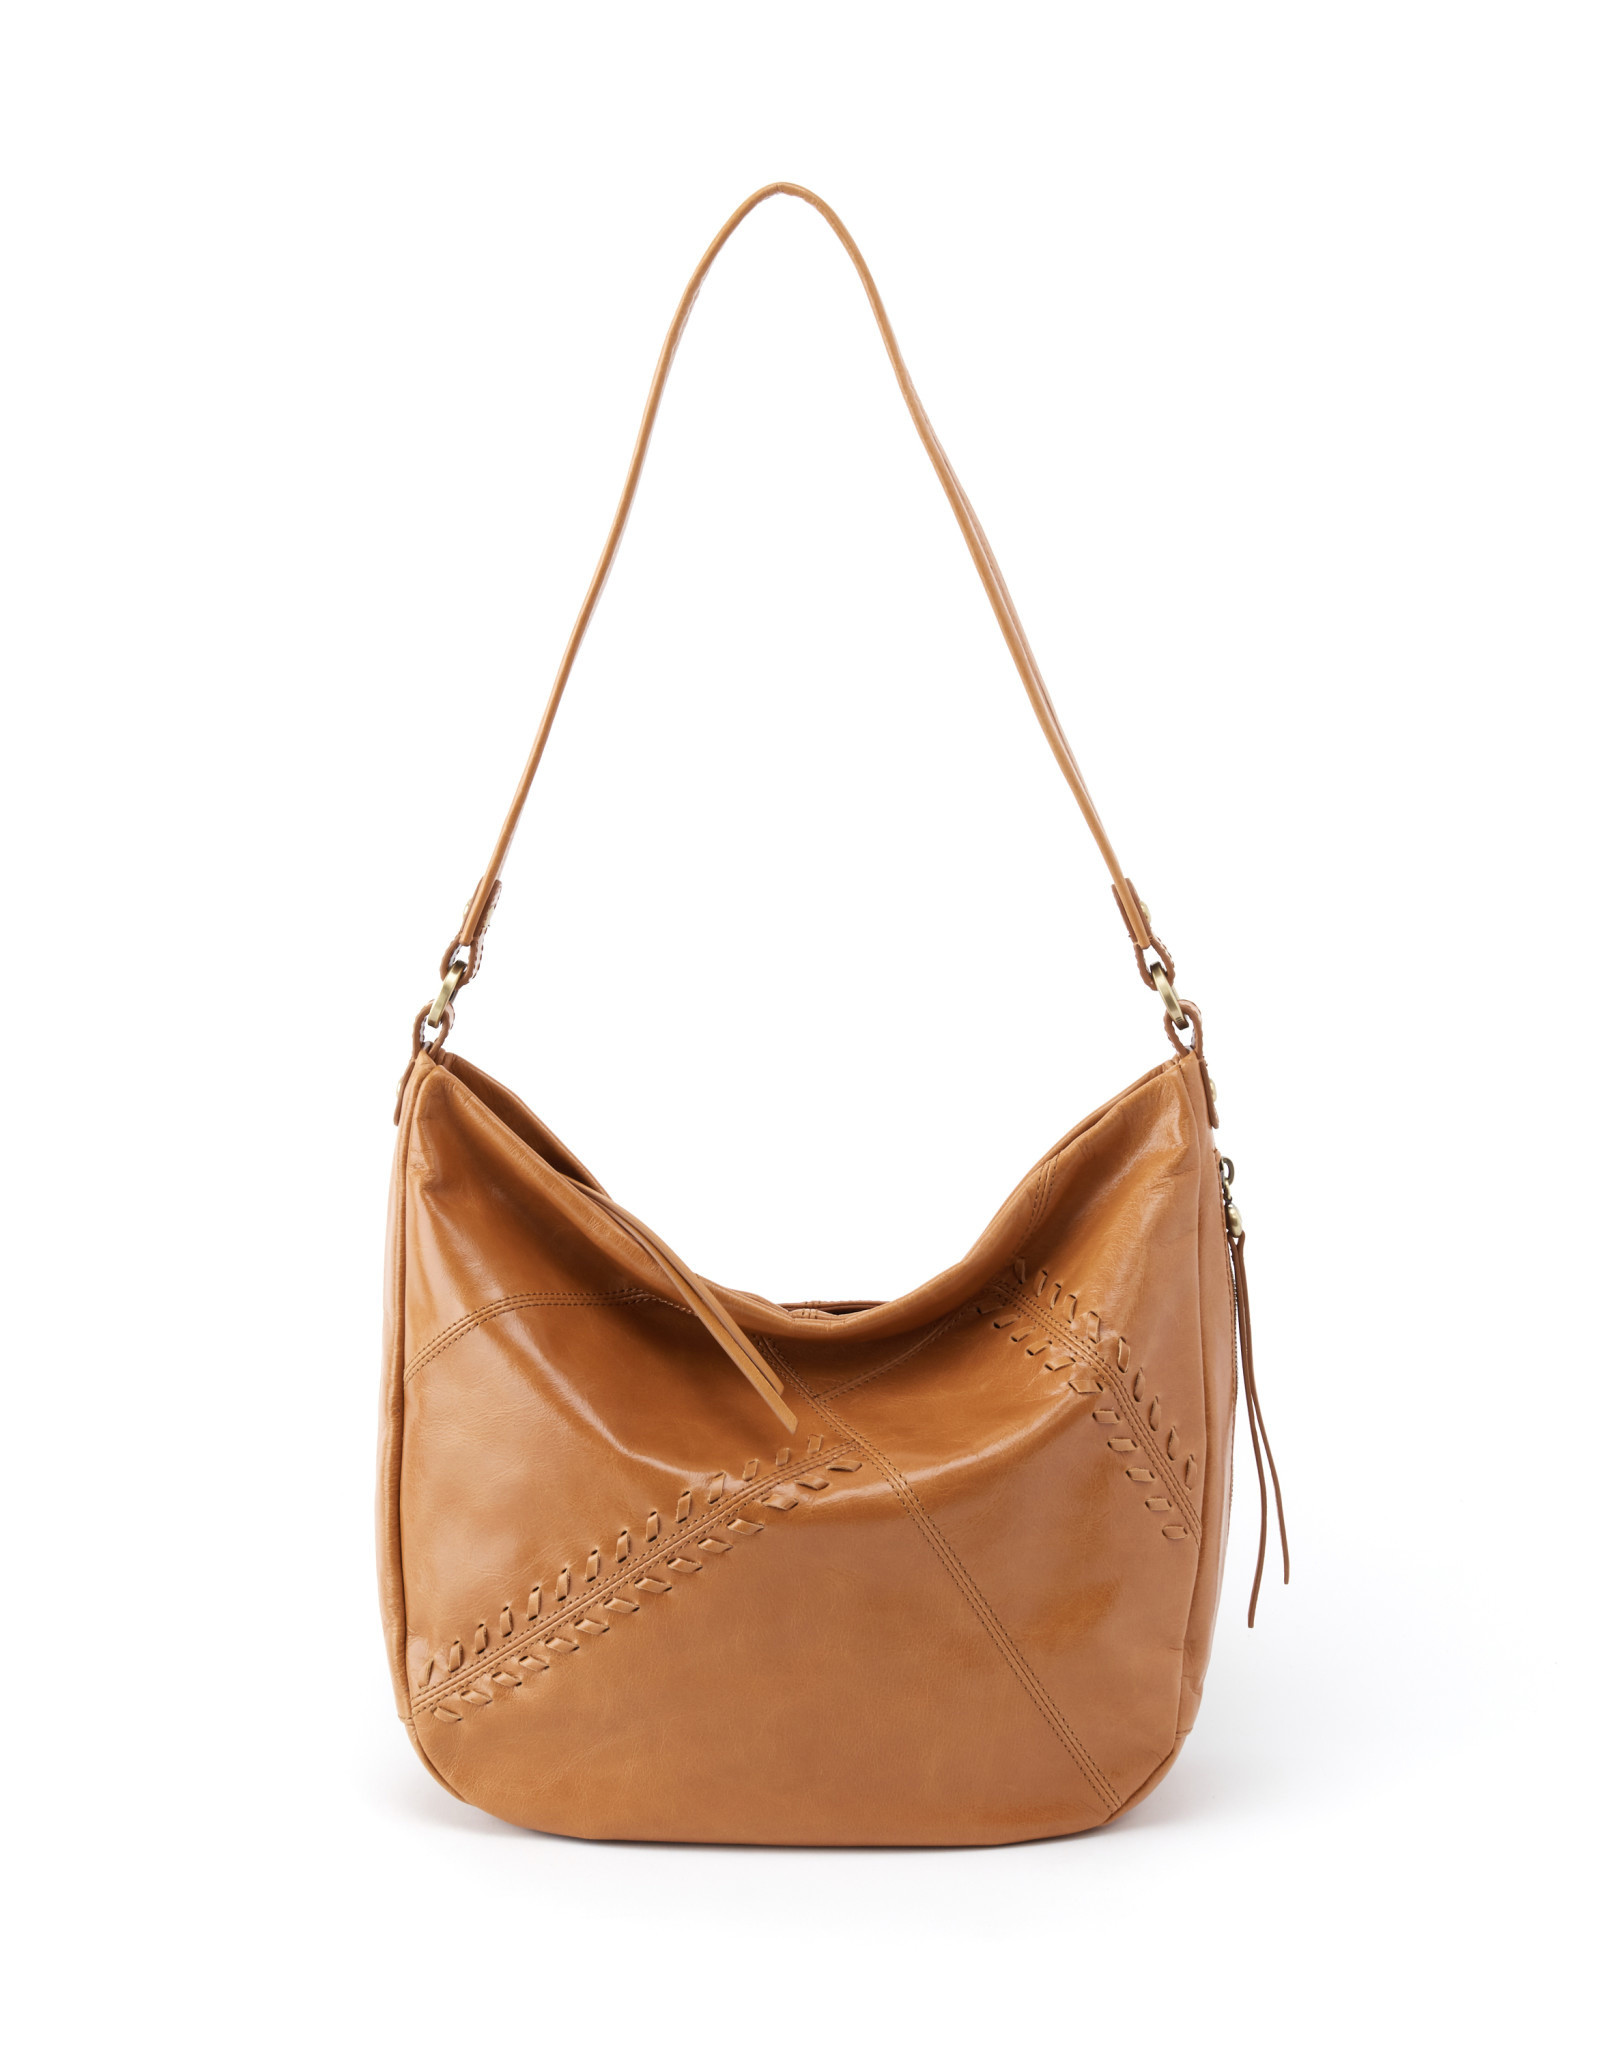 HOBO Garner Purse - Honey